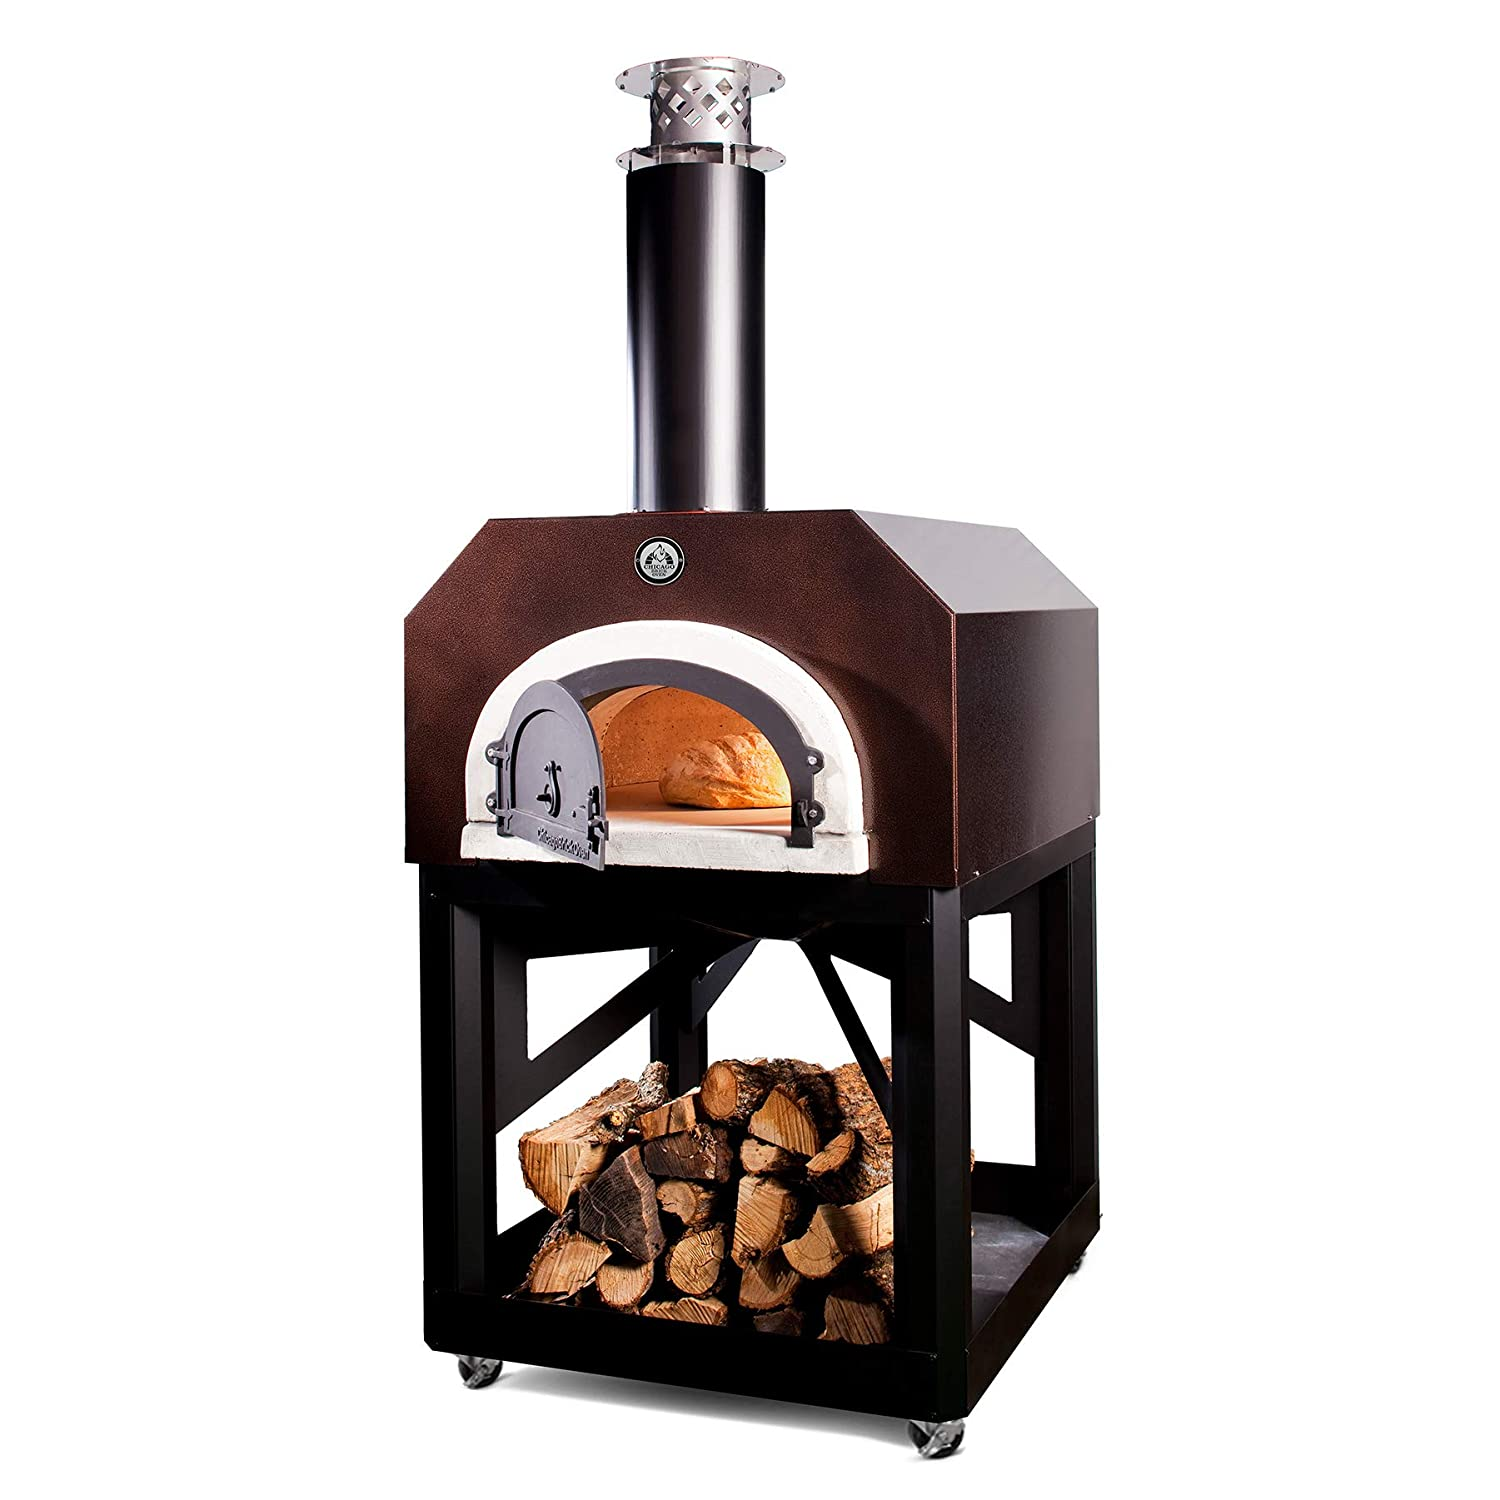 Chicago Brick Oven Wood-Burning Mobile Outdoor Pizza Oven, CBO-750 Mobile with Copper Vein Hood